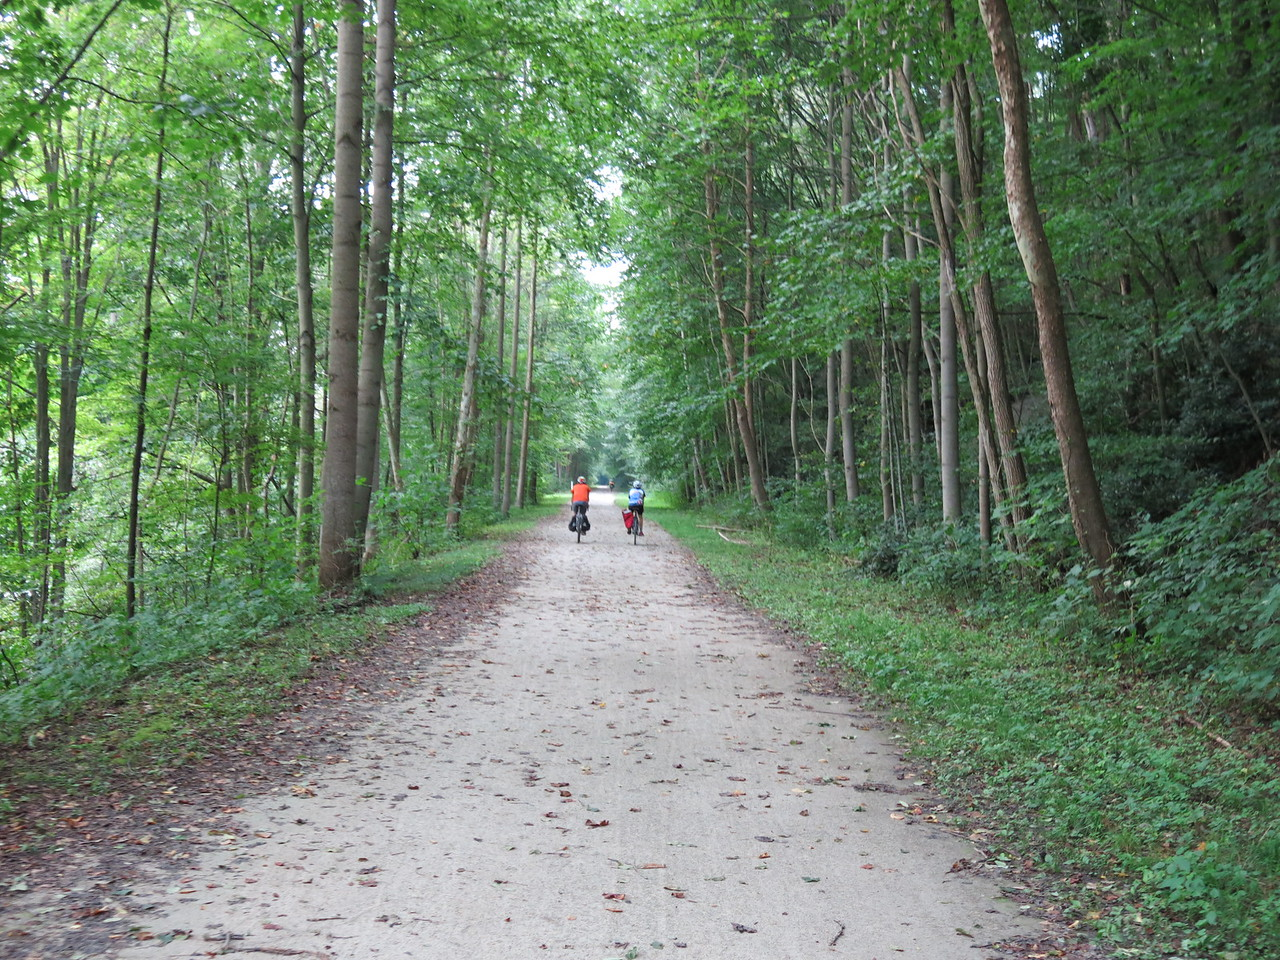 The trail continues through Ohiopyle State Park